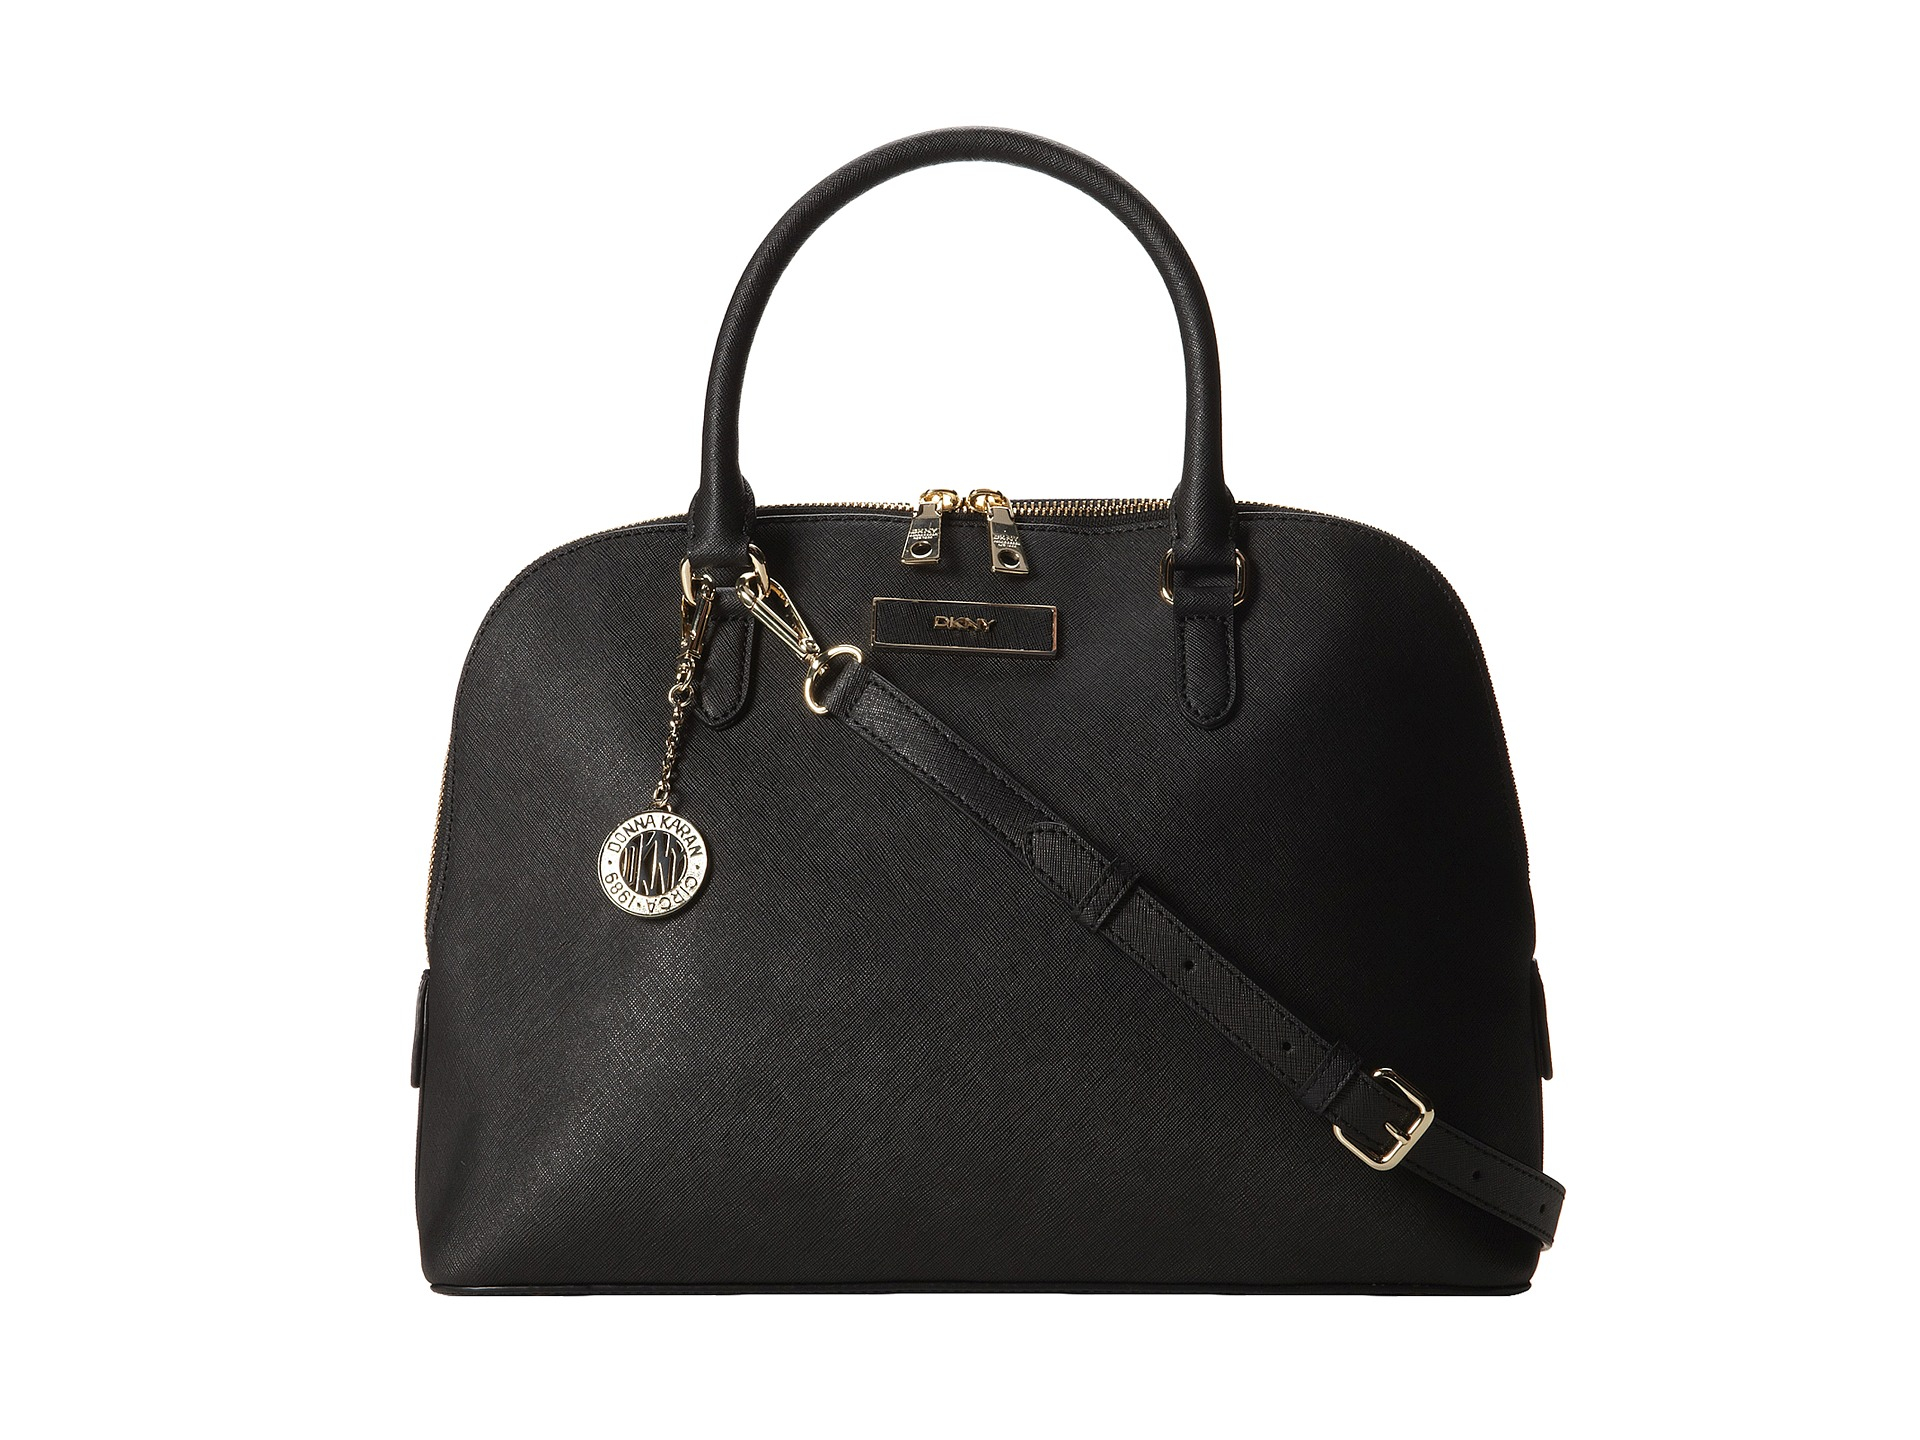 dkny bryant park saffiano leather round satchel w det ss in black lyst. Black Bedroom Furniture Sets. Home Design Ideas